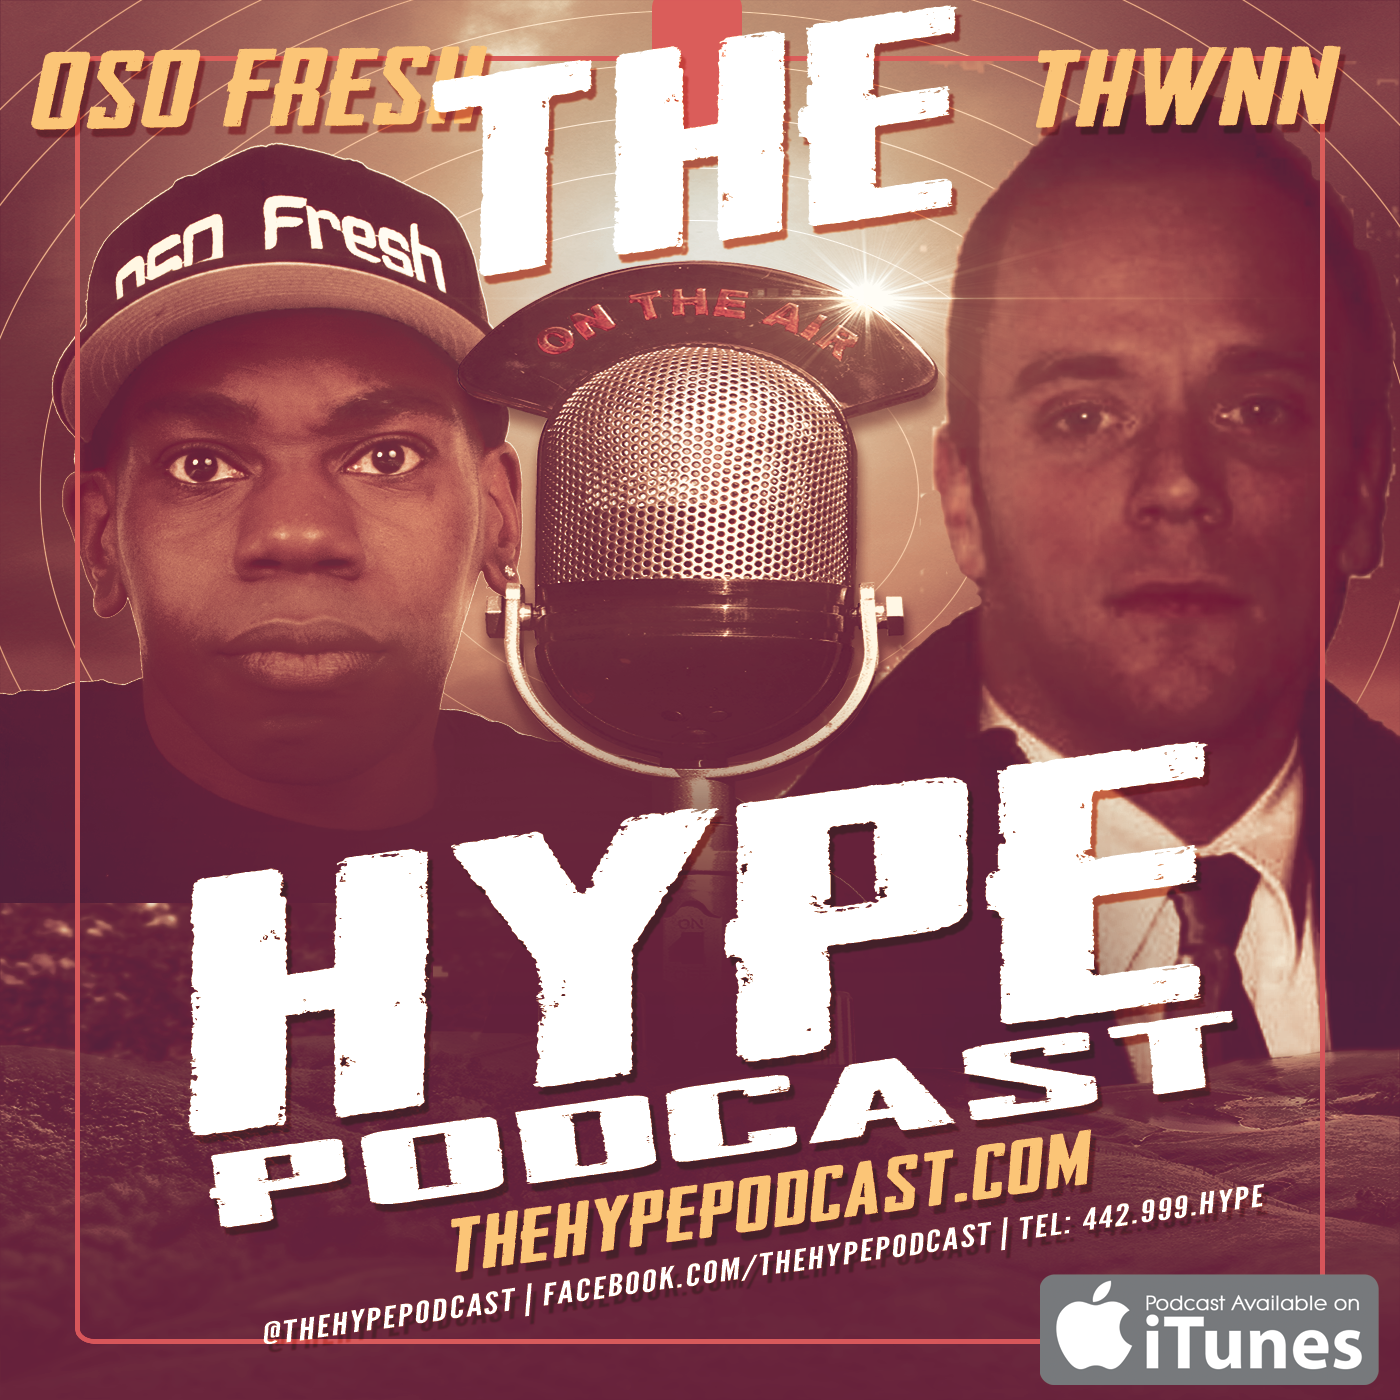 Artwork for hype podcast episode 1011 It was Just a Stream